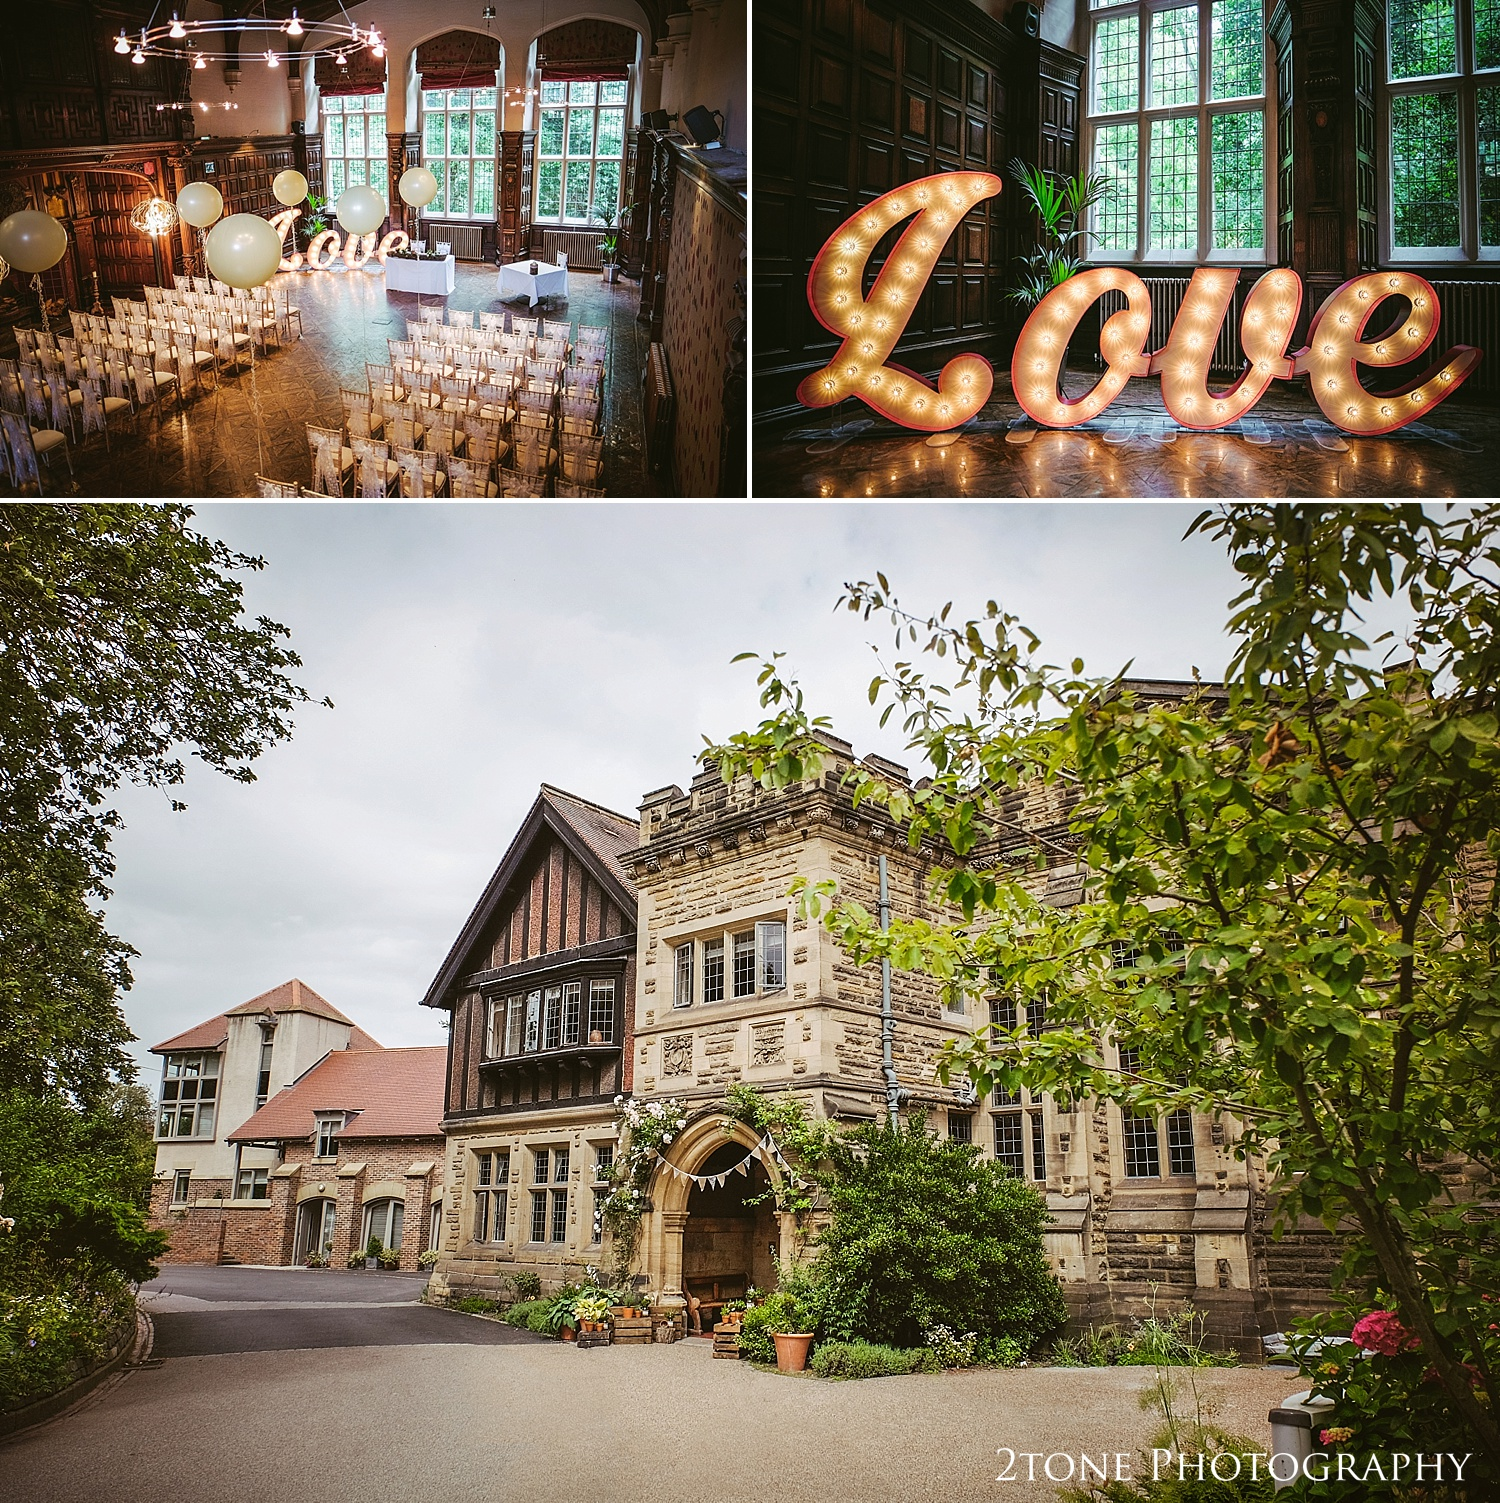 Jesmond Dene House newcastle wedding photography by 2tone Photography www.2tonephotography.co.uk